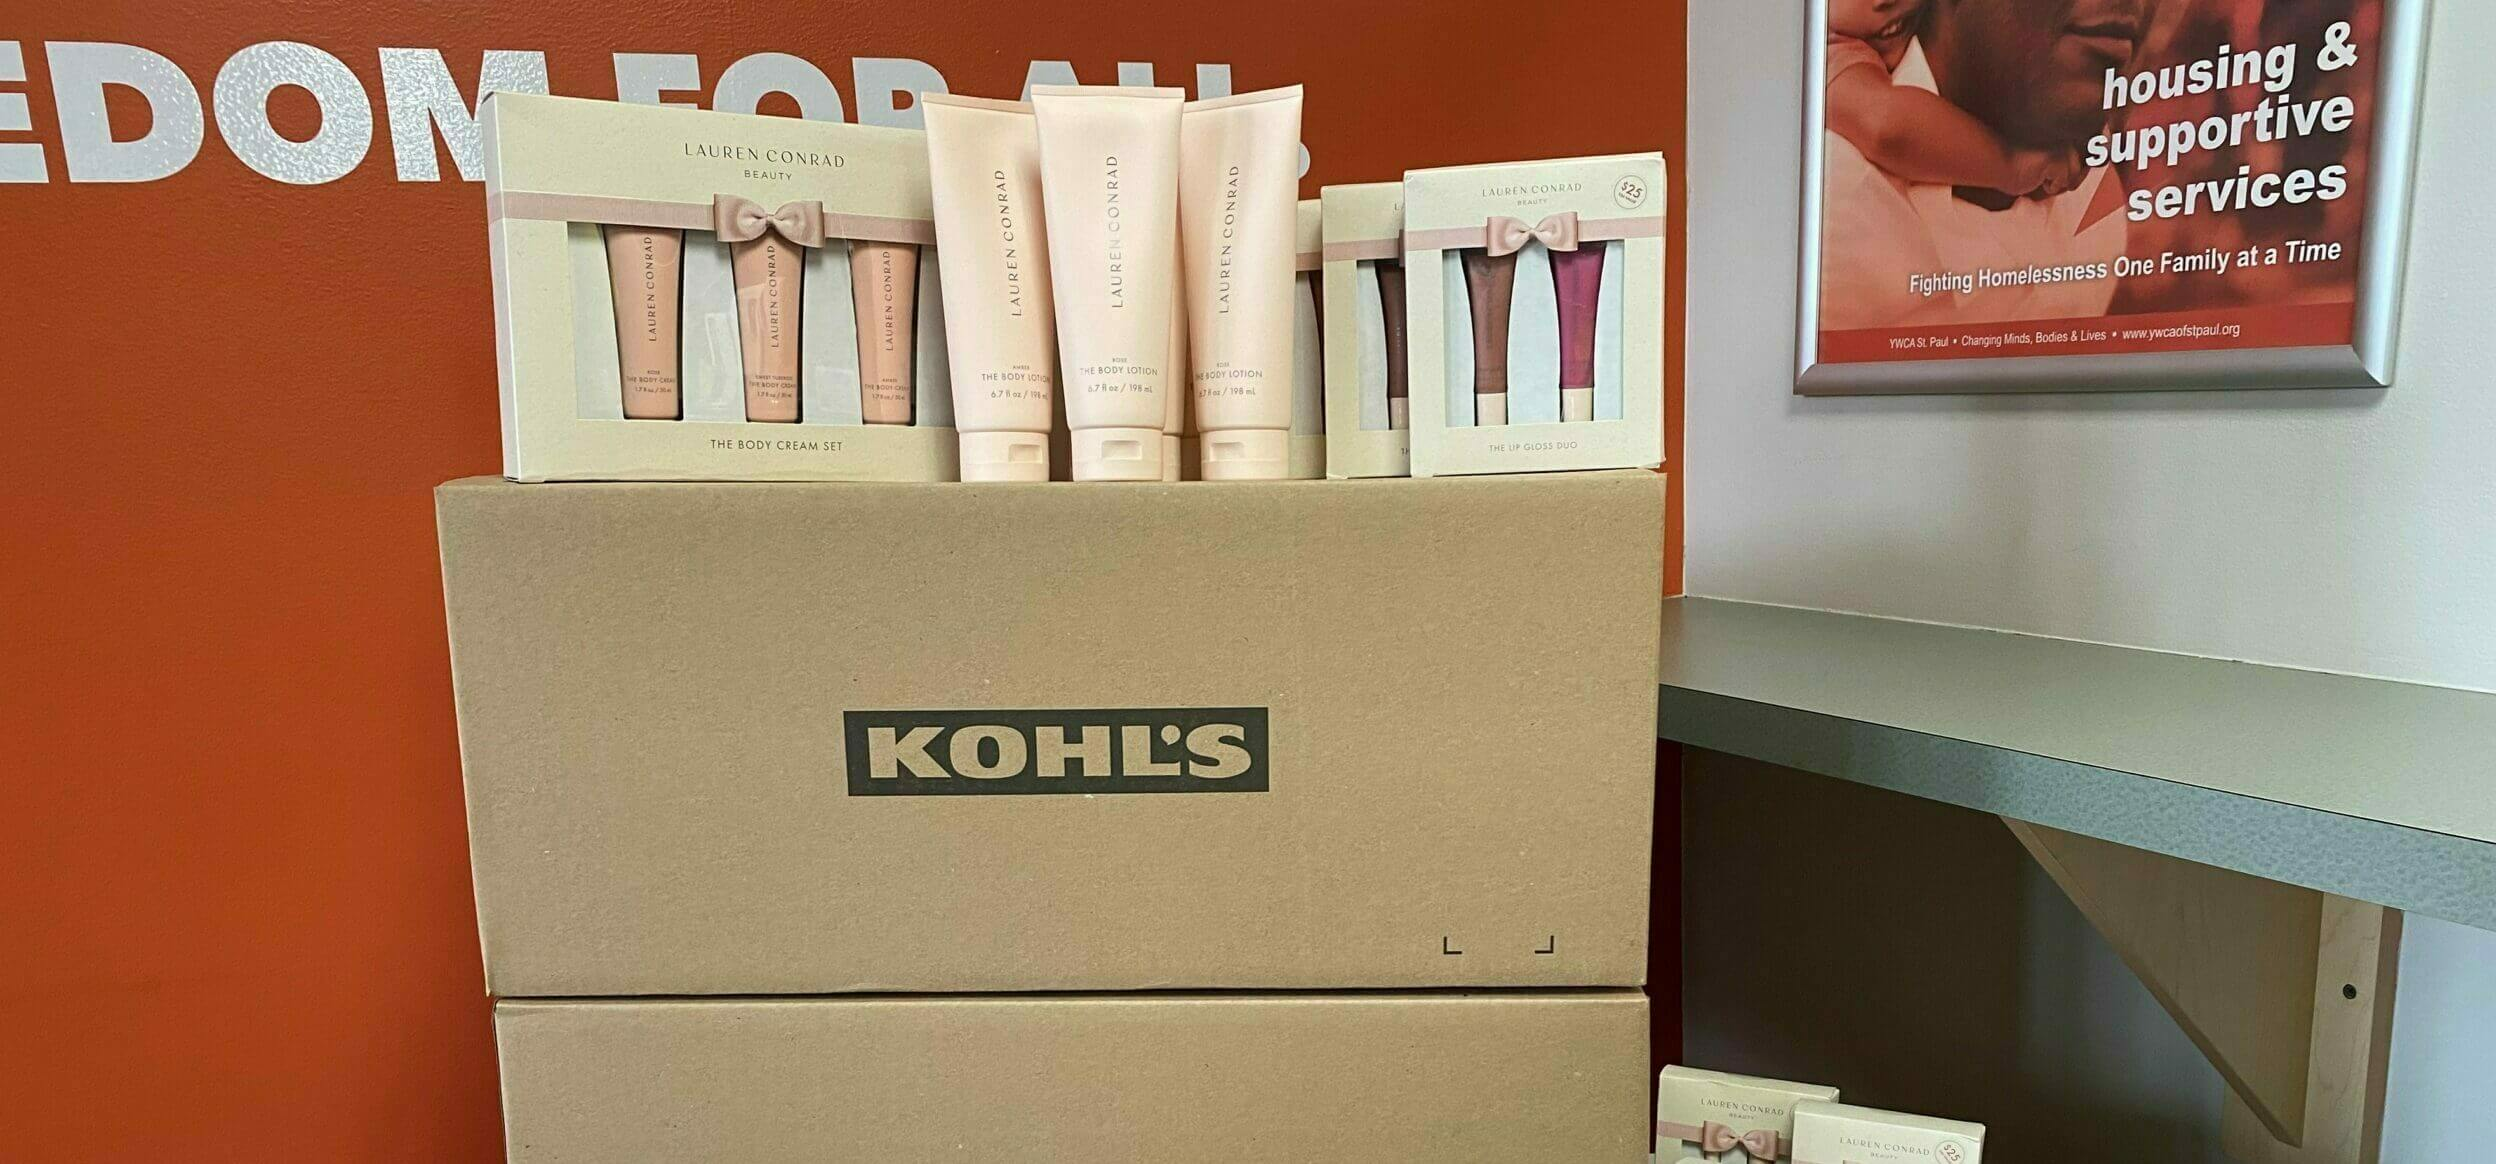 close up of Photo of hair and skincare products stacked on boxes with Kohl's logo